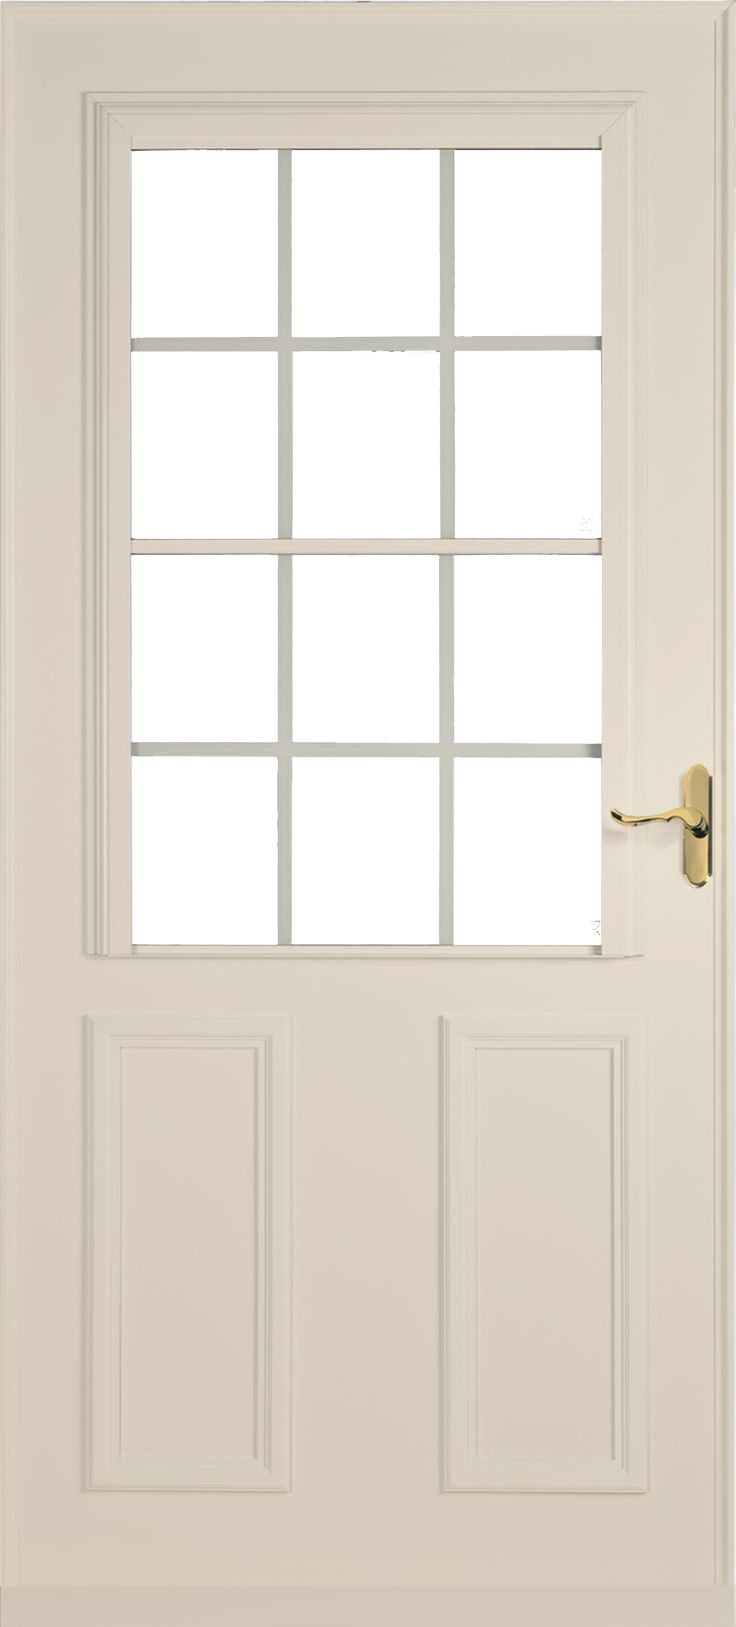 Best 25 larson storm doors ideas only on pinterest larson larson has a variety of styles to choose from including full view decorative enhanced security and our most popular retractable screen away doors vtopaller Gallery